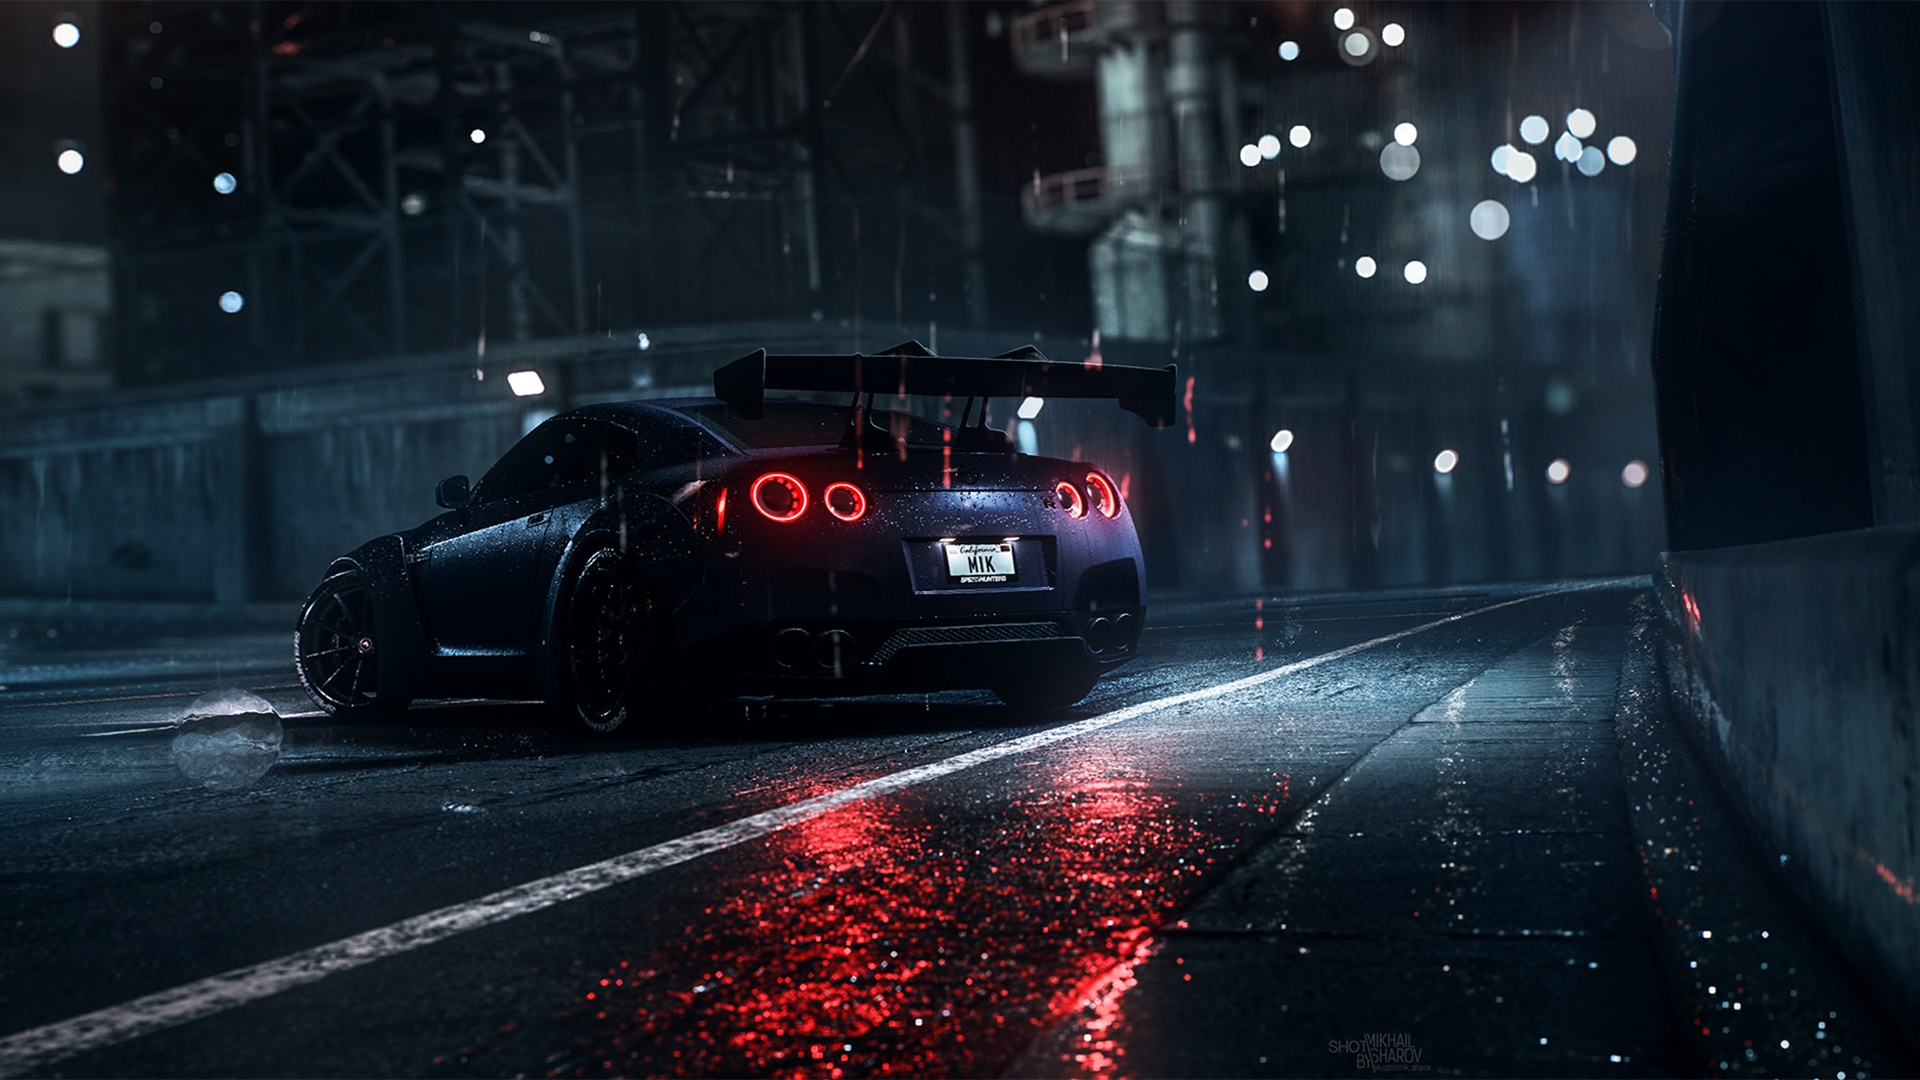 Dark Night Rain Car Nissan Nissan GT R Need For Speed Need For Speed 2016 1920x1080